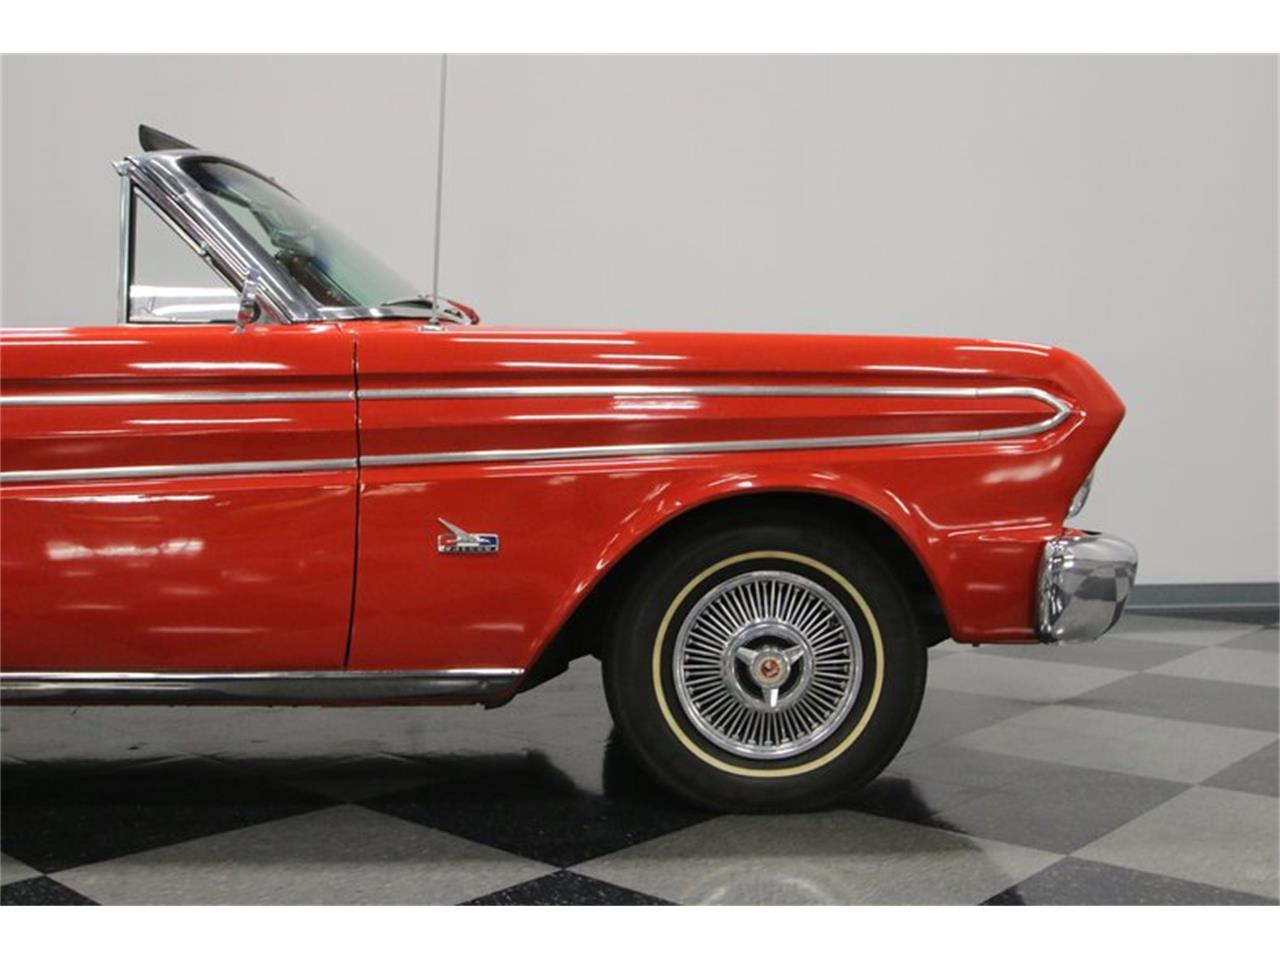 1964 Ford Falcon Futura for sale in Lavergne, TN – photo 33